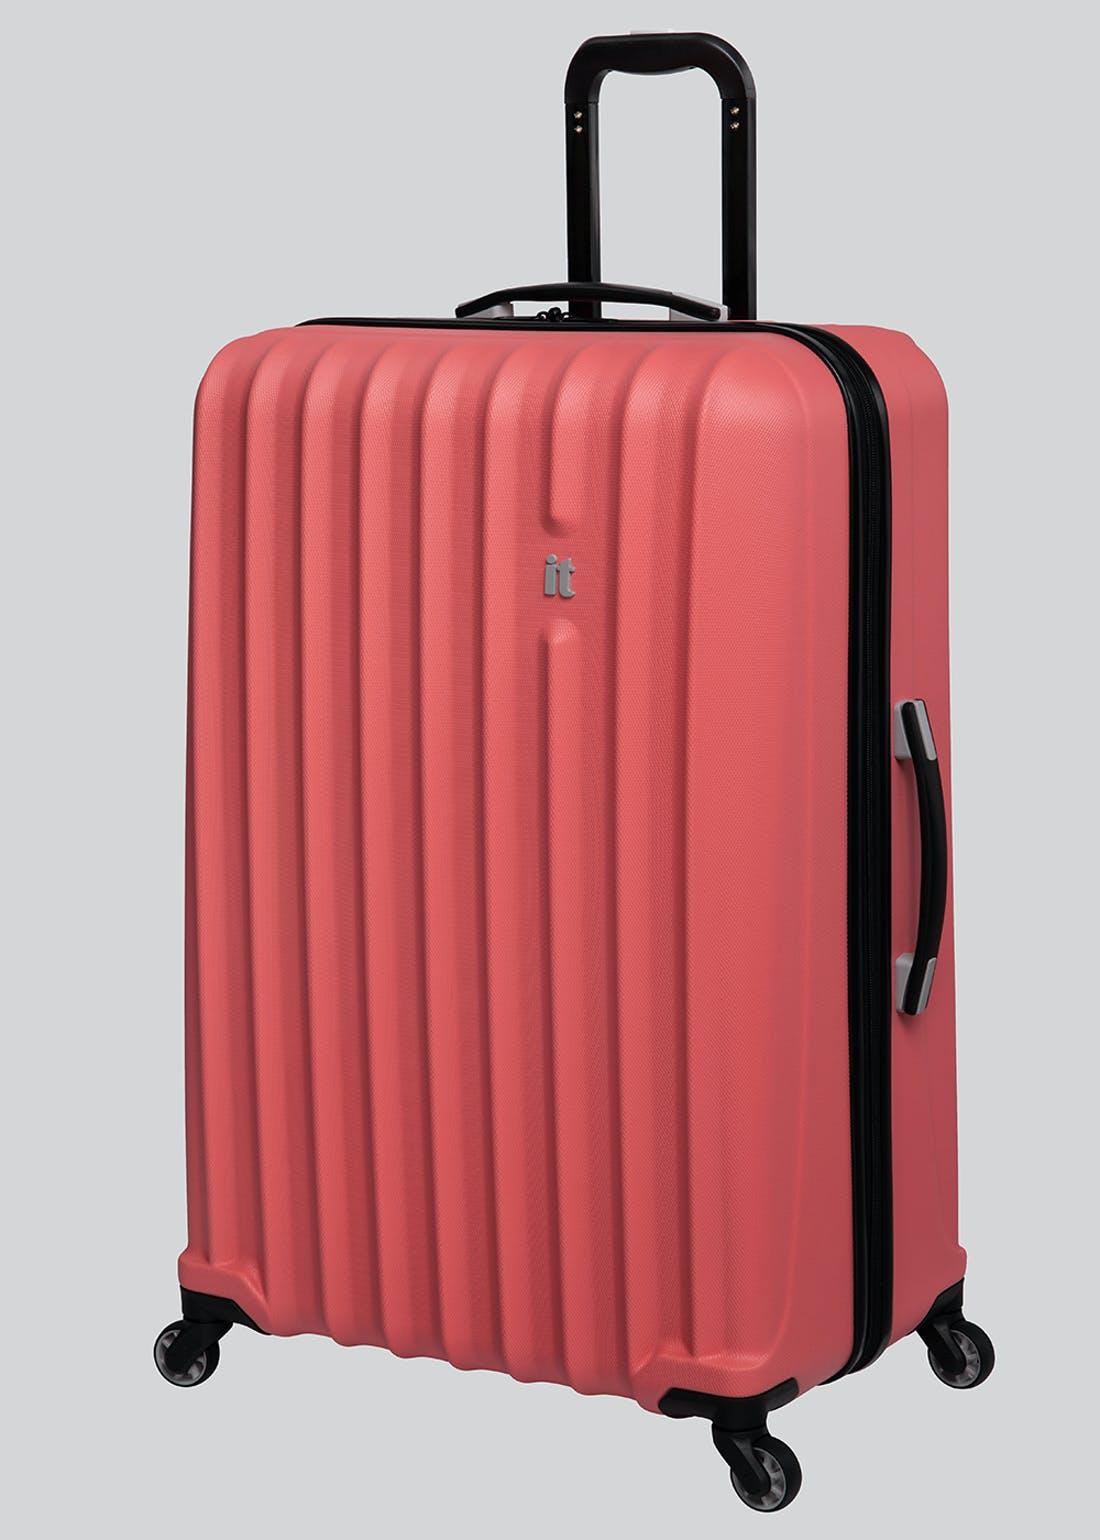 IT Luggage Ribbed Hard Shell Suitcase